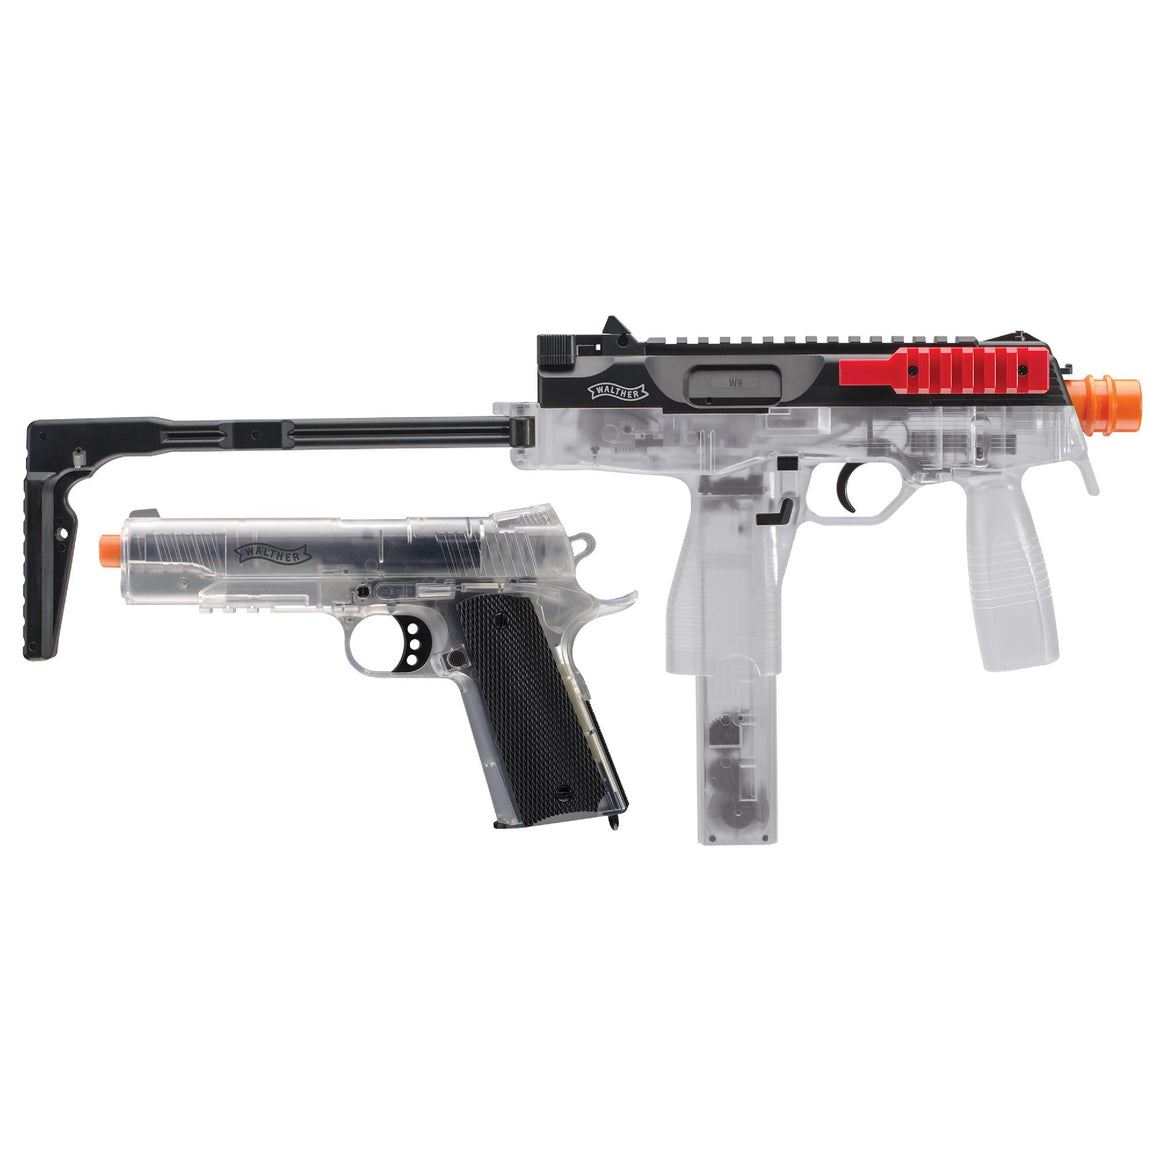 6mm Walther Tactical Airsoft Kit - Clear-Red